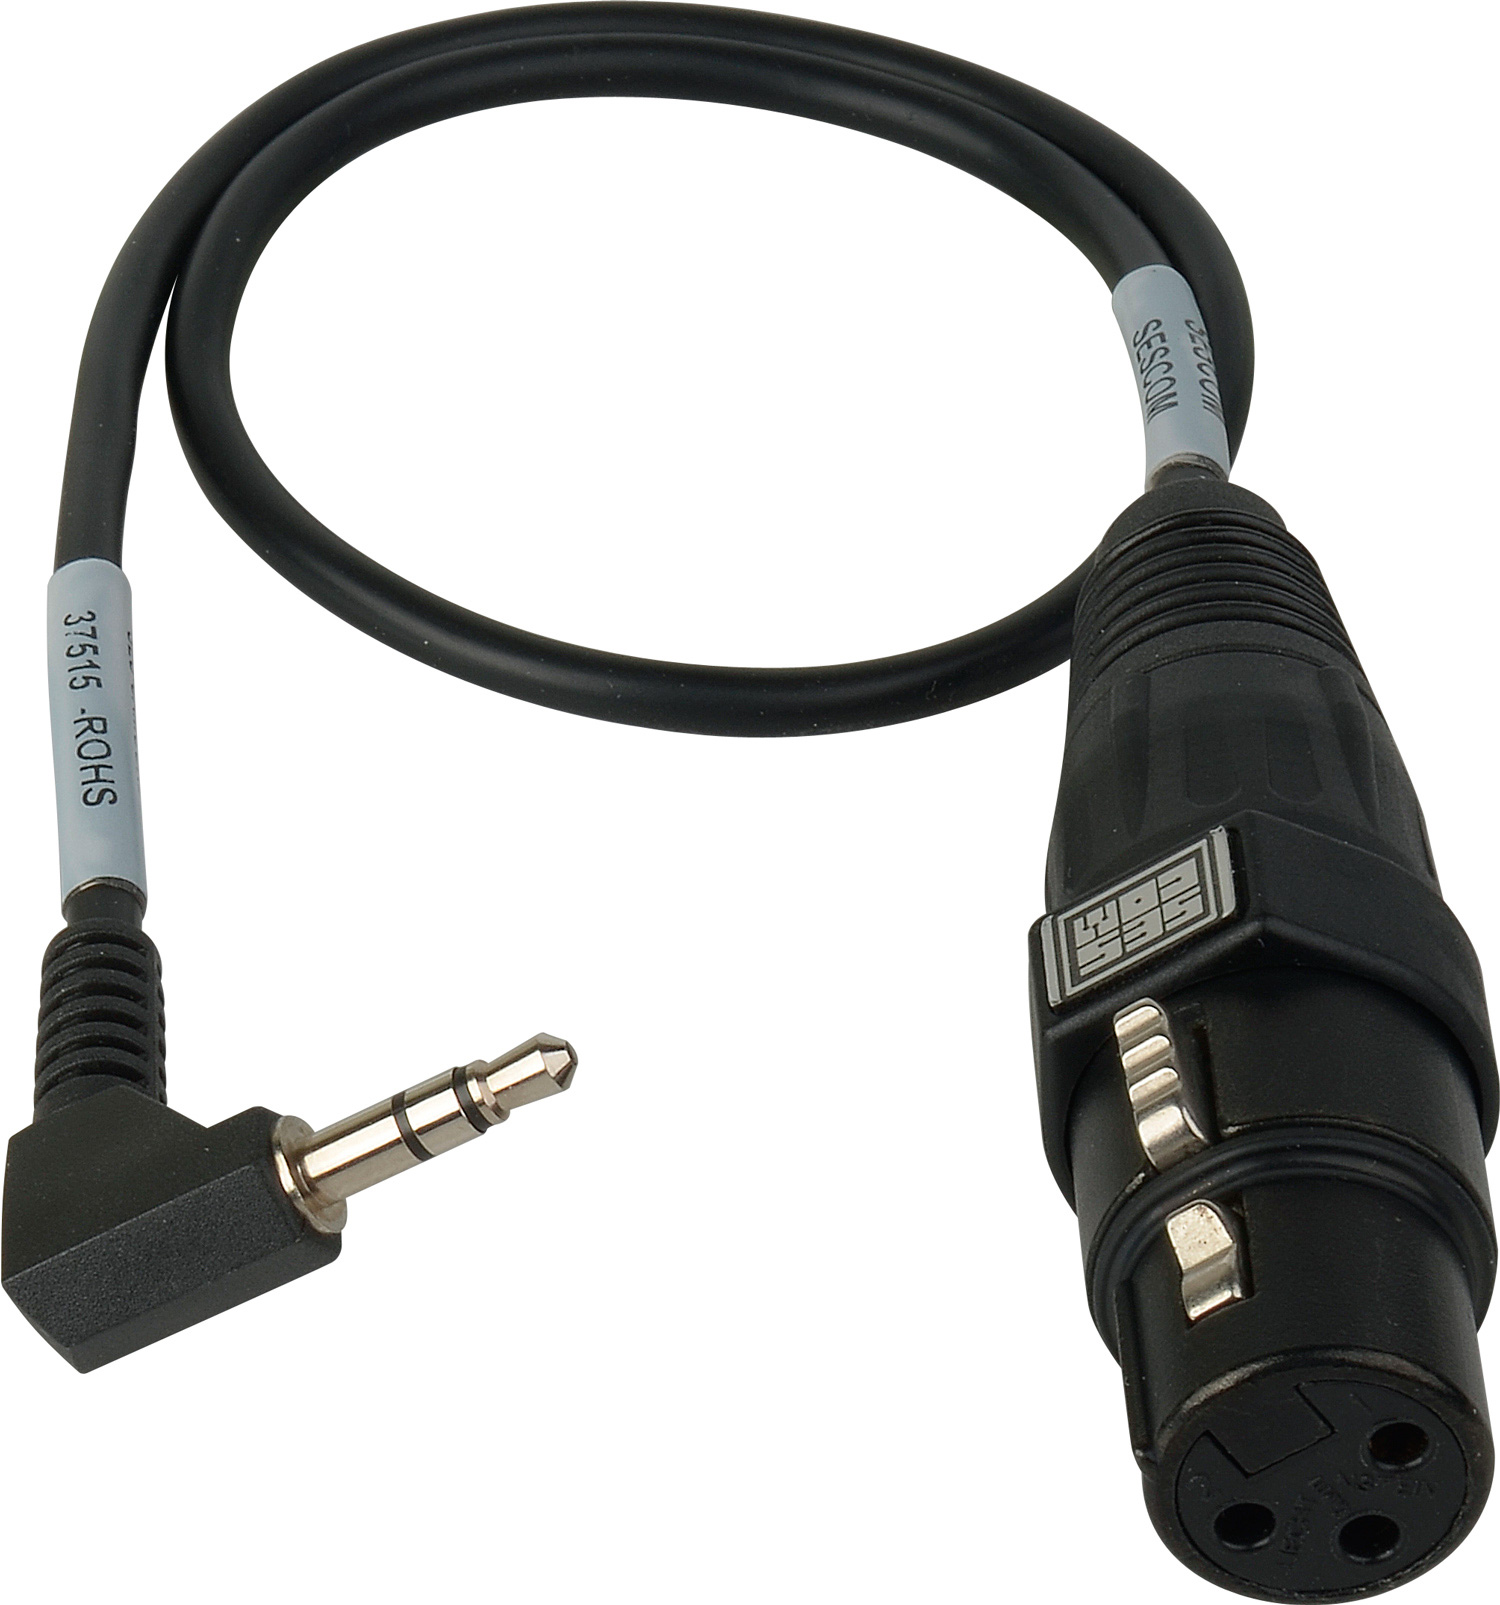 Sescom Ses Camcord Mic Xlr To Dslr Audio Input Adapter Cable Also See Neutrik Jackand Xlr3 Wiring Speciality Audioleads Bulk Zoom